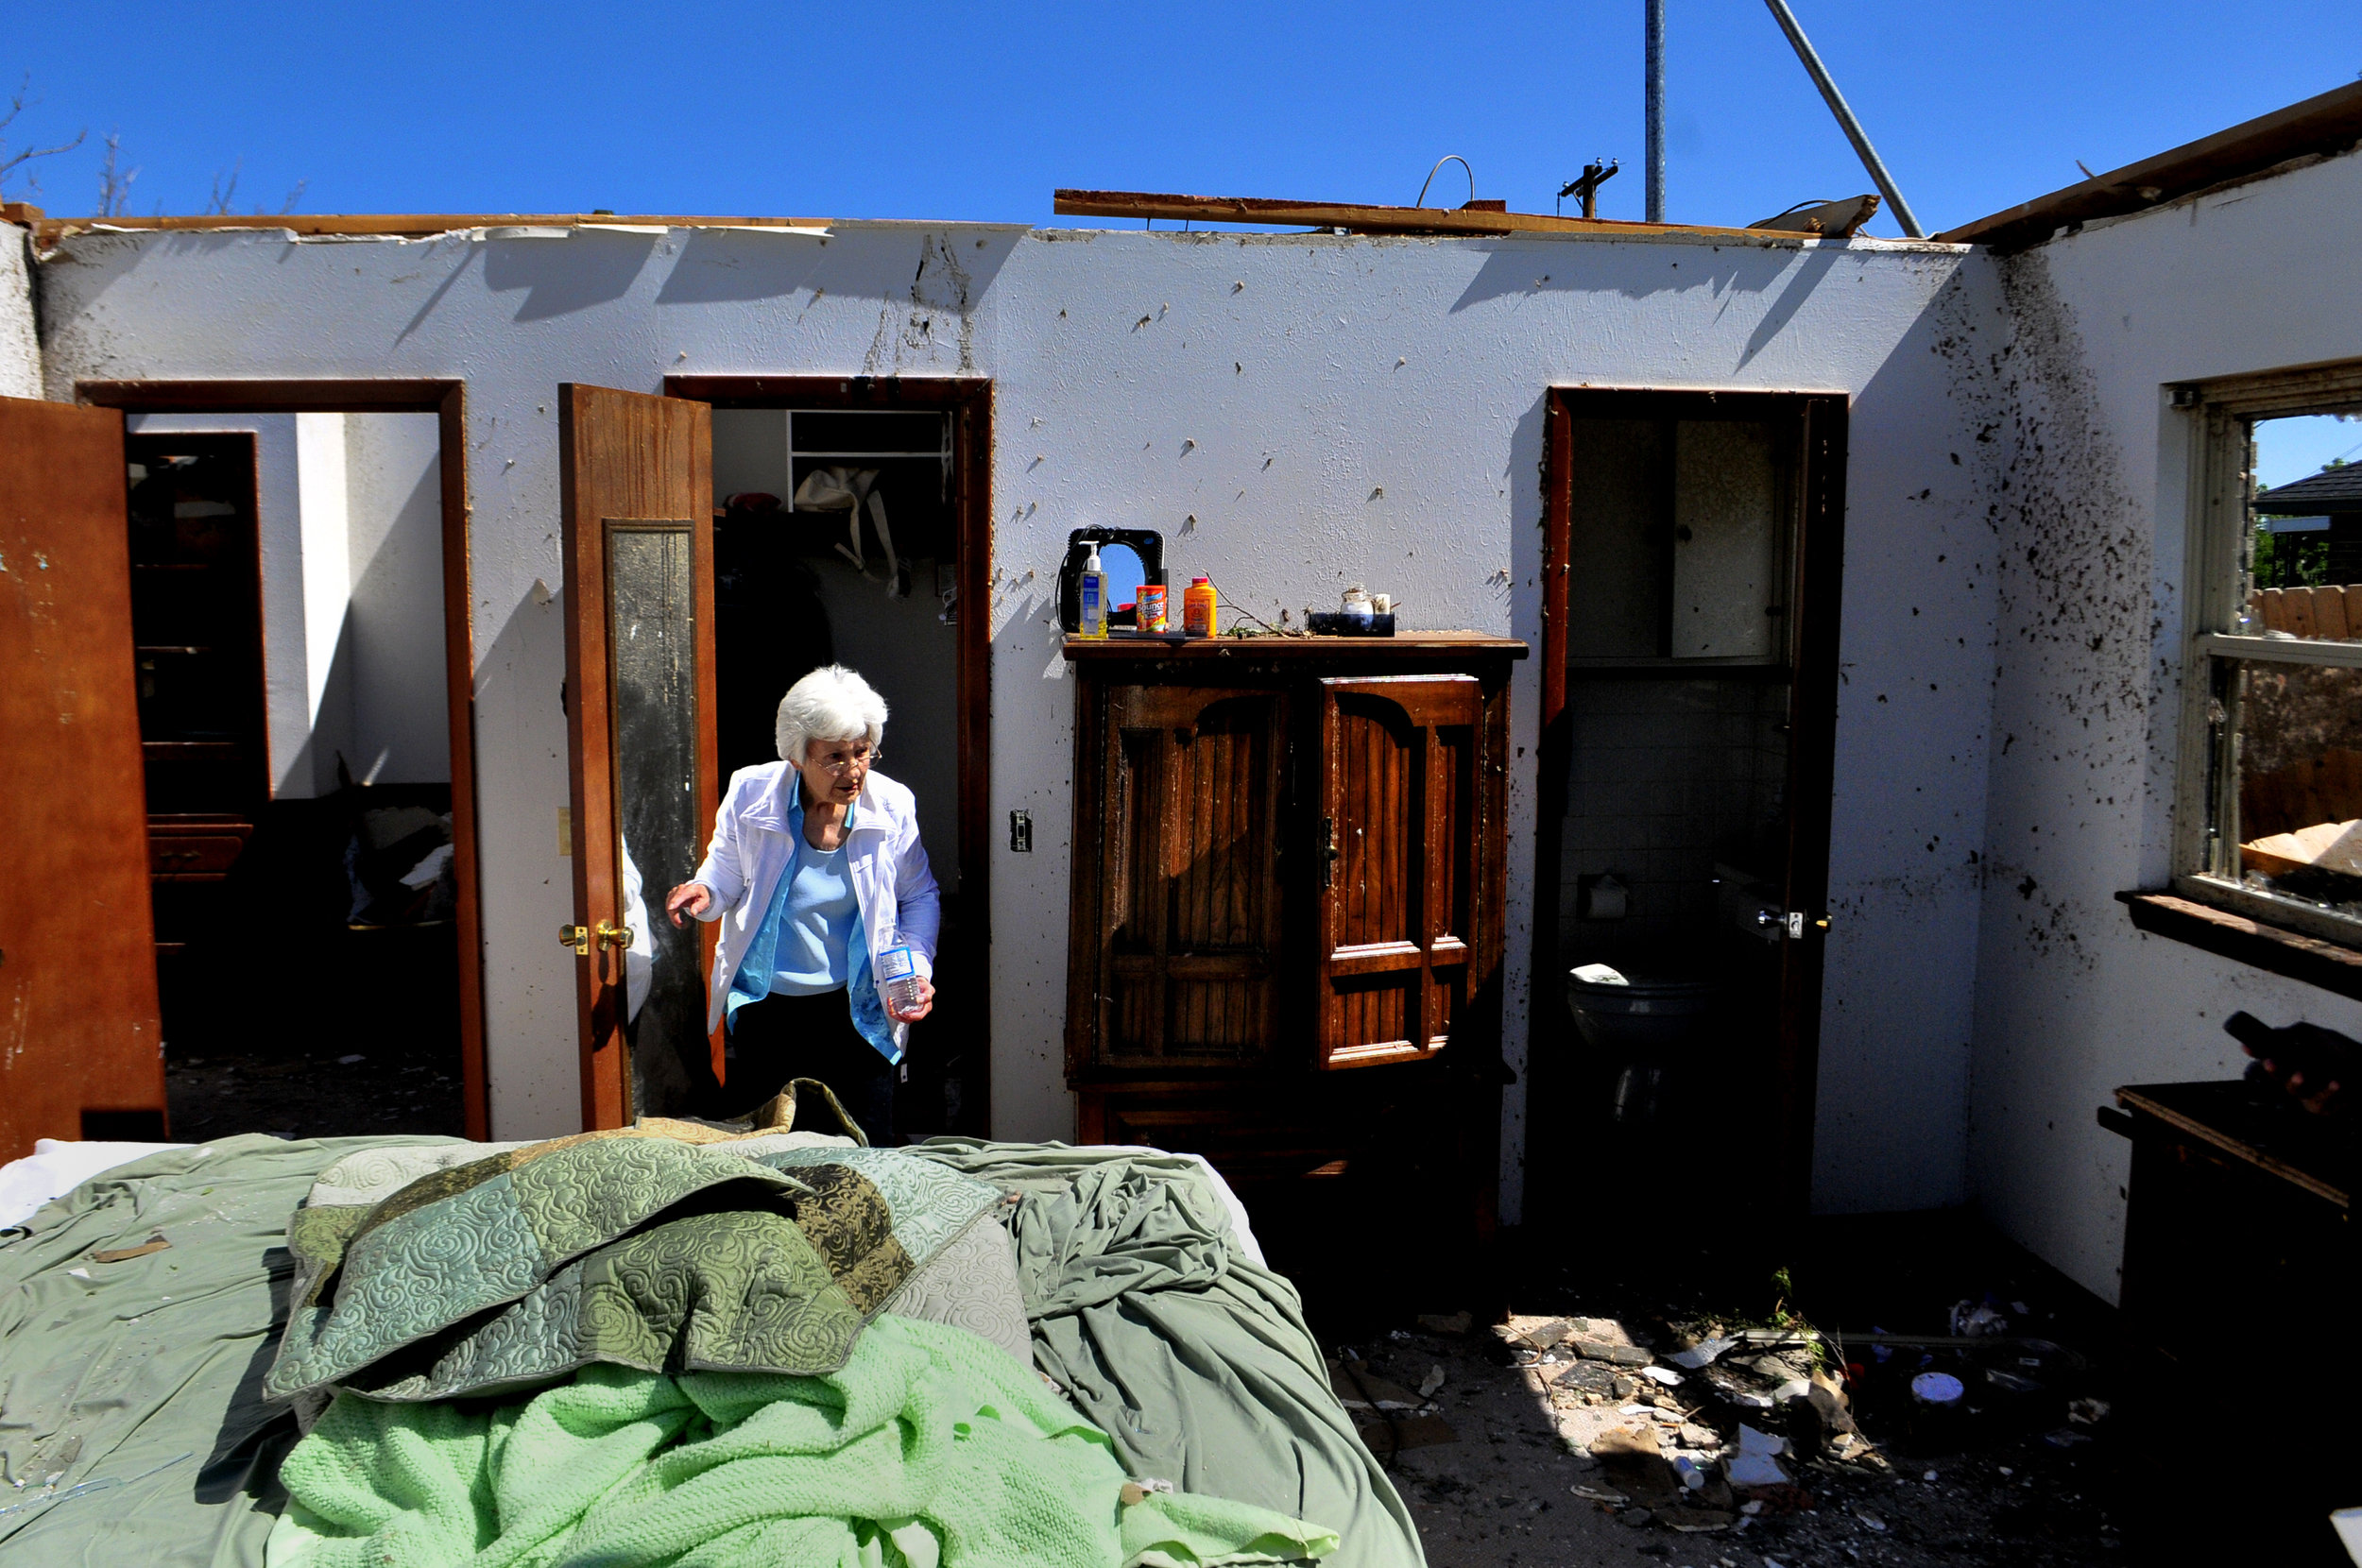 Wilma Nelson, 87, stands in the closet that she took shelter in while a tornado destroyed her home in Woodward Oklahoma on Sunday. Nelson also survived the deadly tornado that struck Woodward Oklahoma on April, 9 1947.